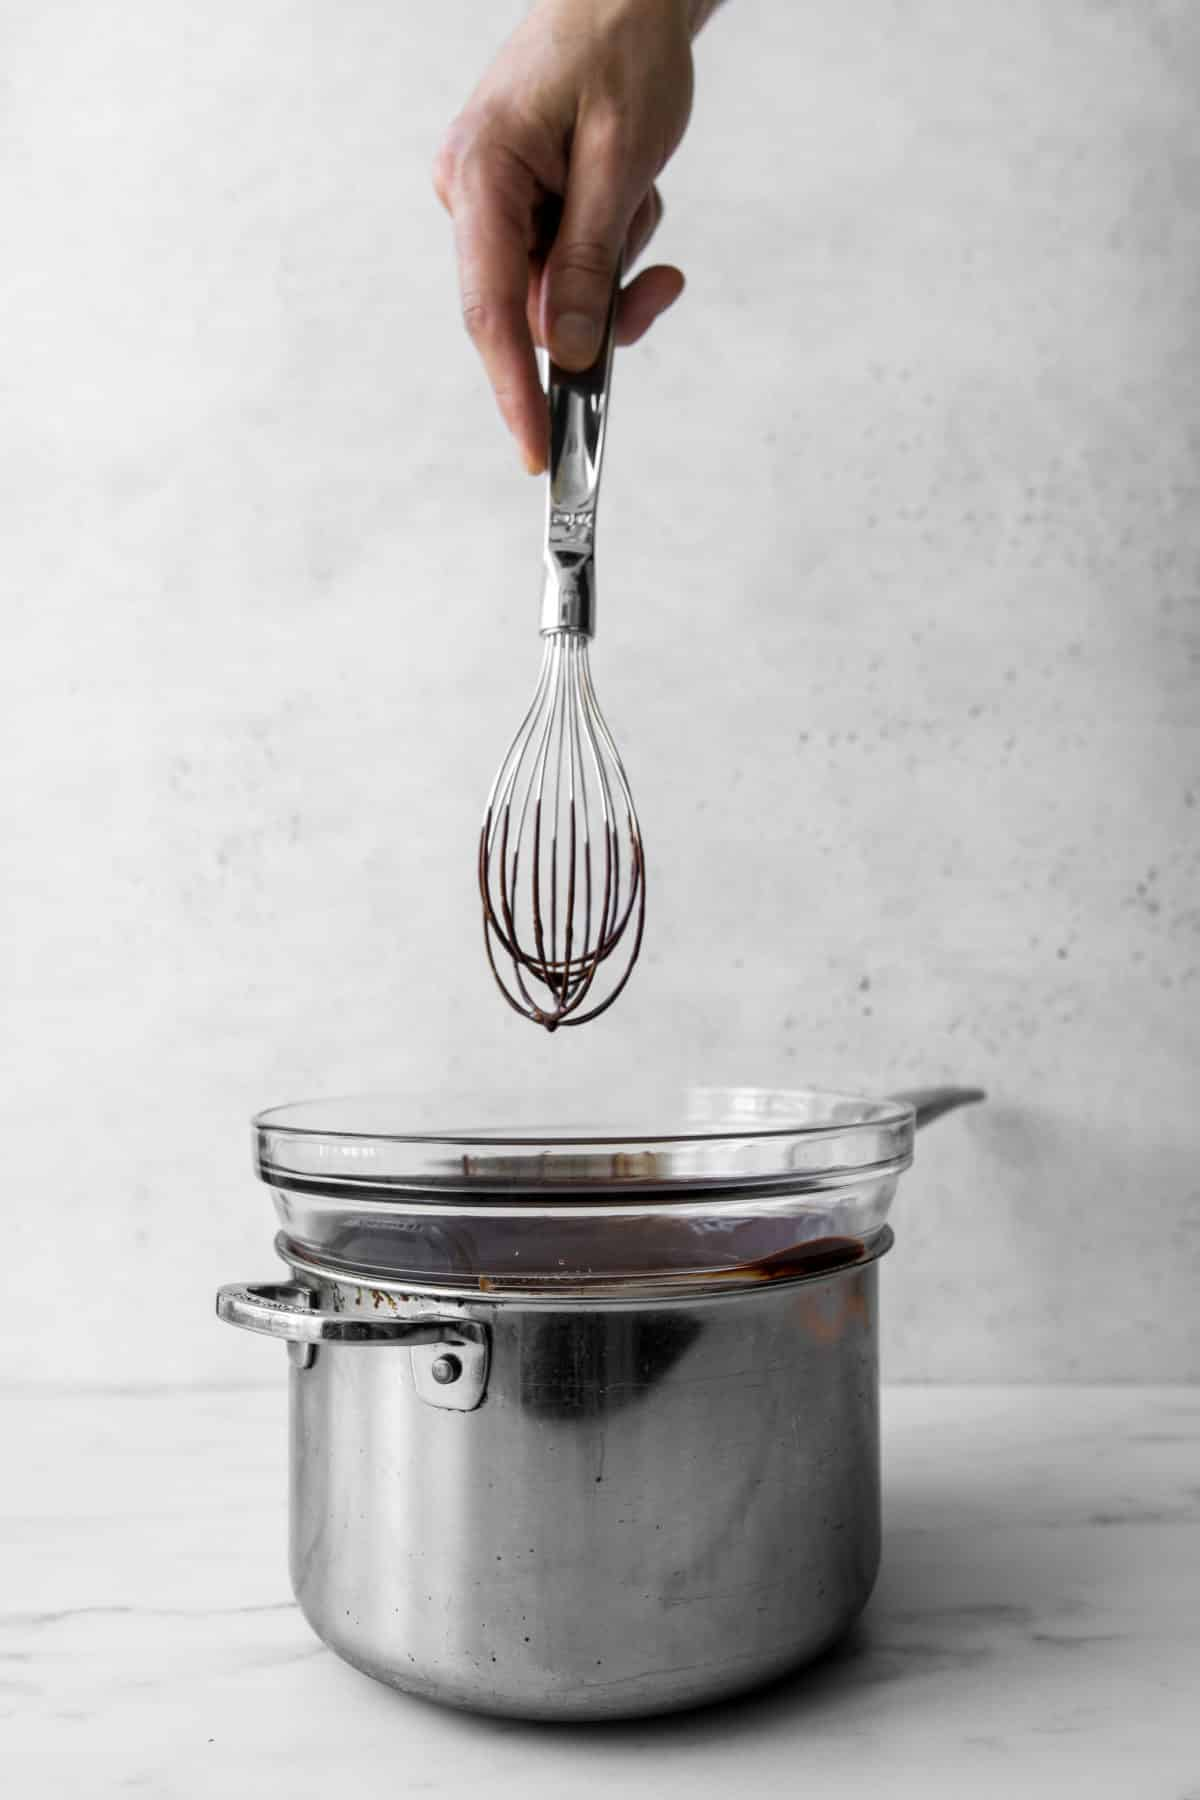 Whisk with chocolate on it being held above a pot with a glass bowl on top